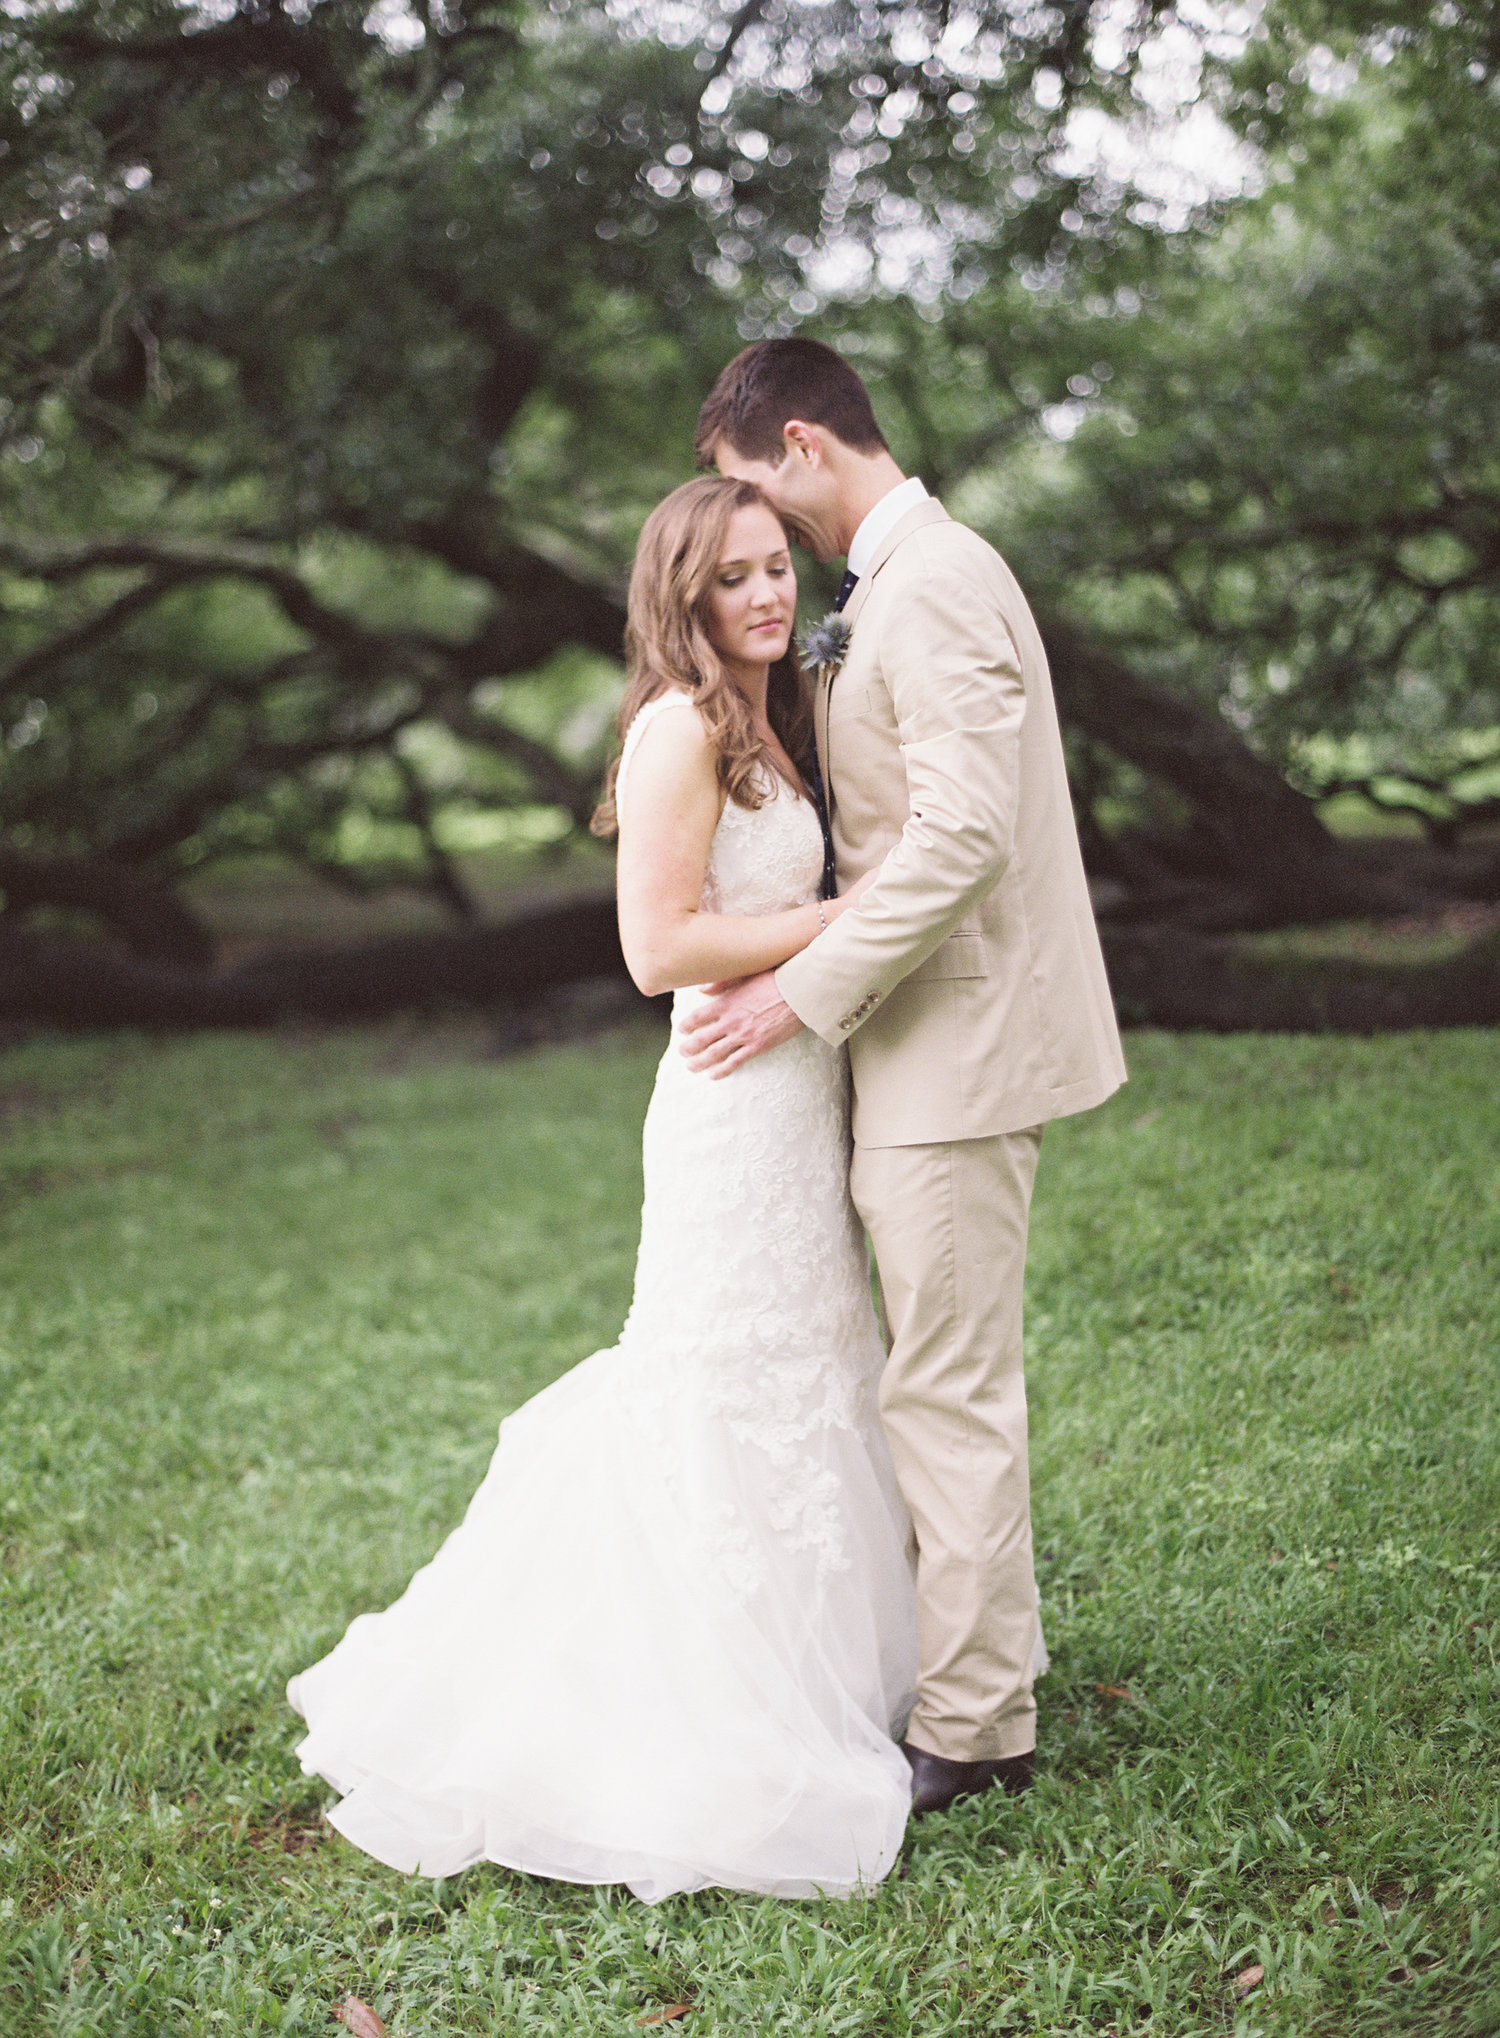 Bride and groom pose in front of oak tree